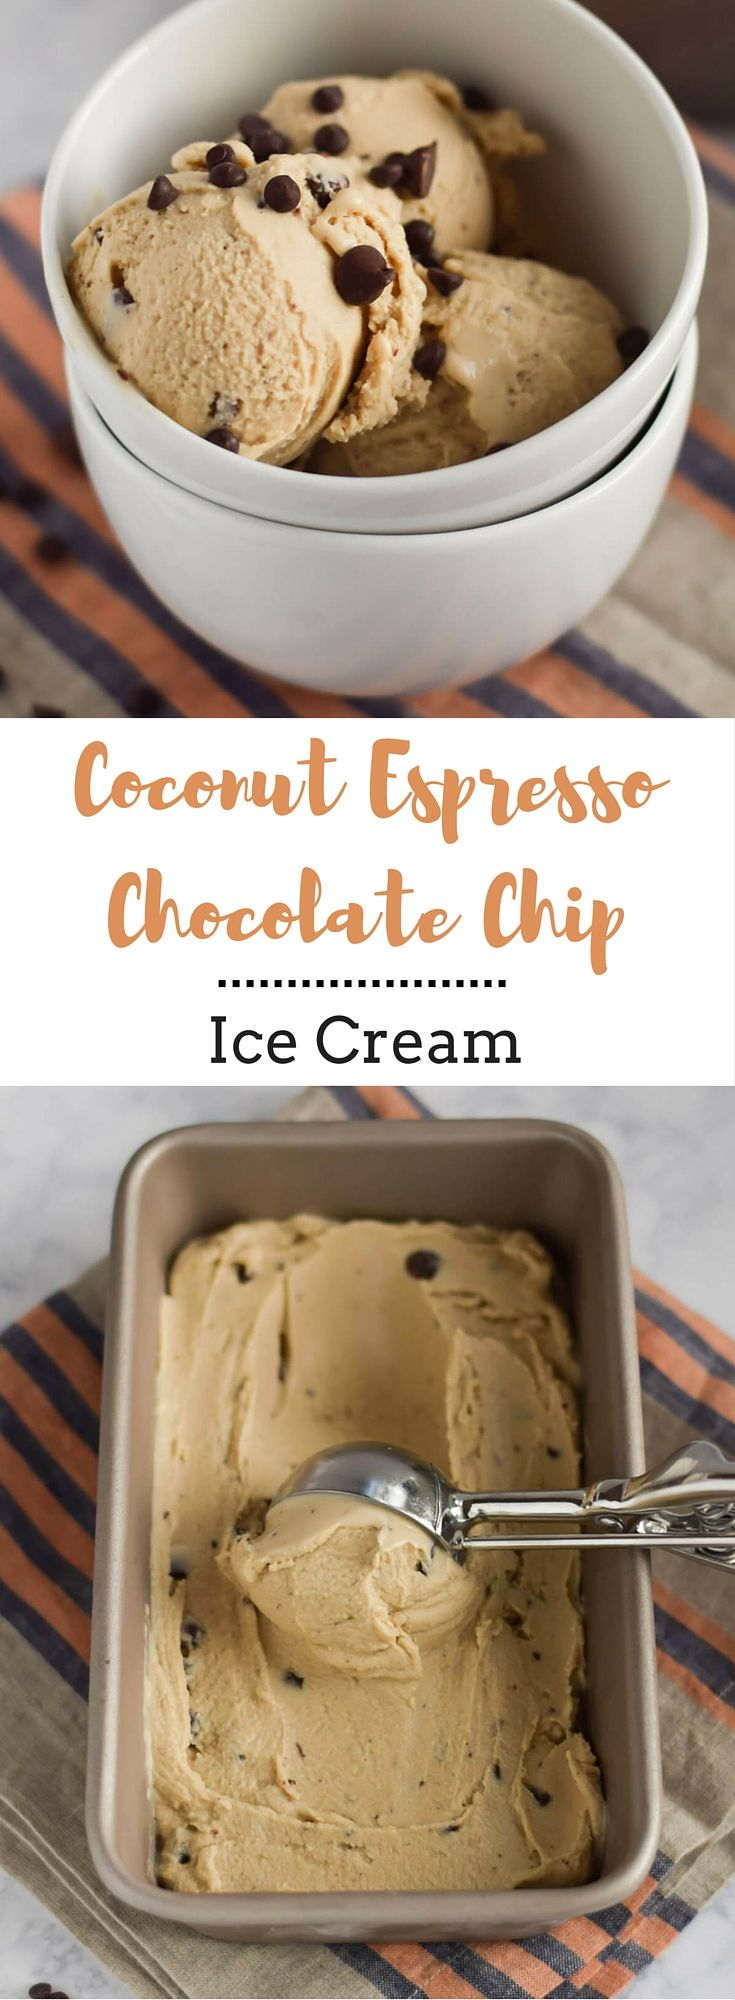 Coconut Espresso Chocolate Chip Ice Cream - Whether you are dairy free or not, you will love this Coconut Espresso Chocolate Chip Ice Cream. It's thick, creamy and just the right amount of sweetness. You won't believe how delicious it is with no cream and it requires only five ingredients. {gluten-free, vegan, dairy-free}